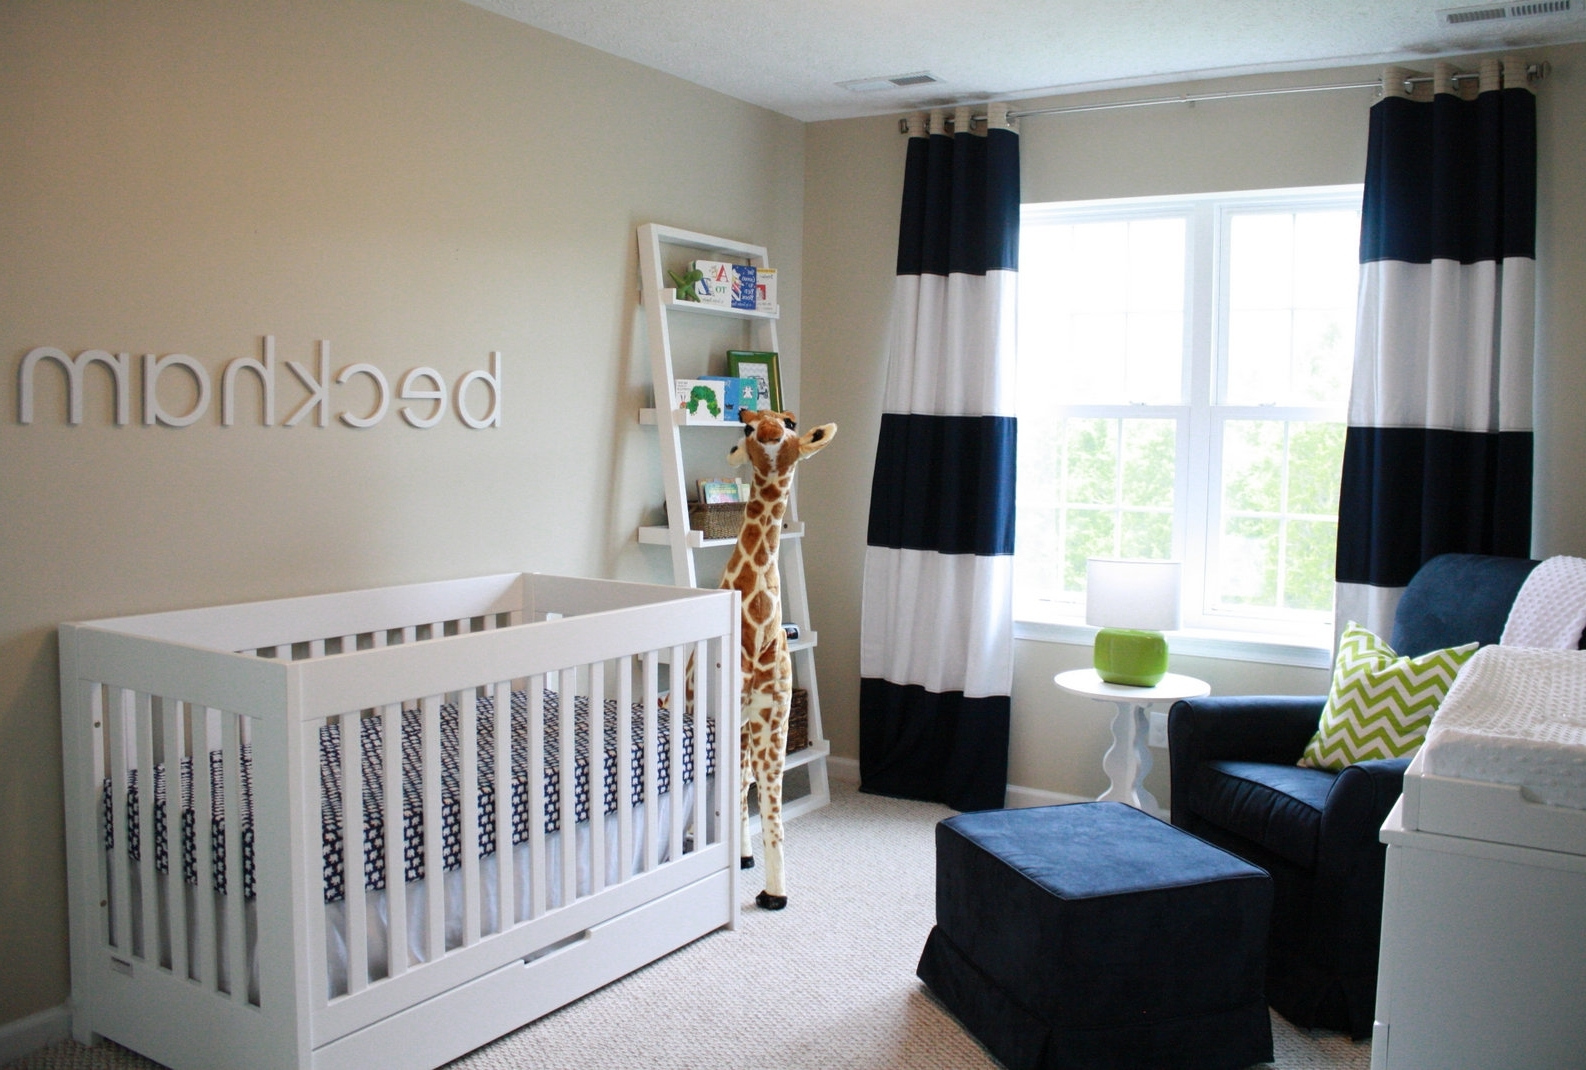 Gorgeous interior design ideas for baby rooms mojidelano com for Room interior design for boys